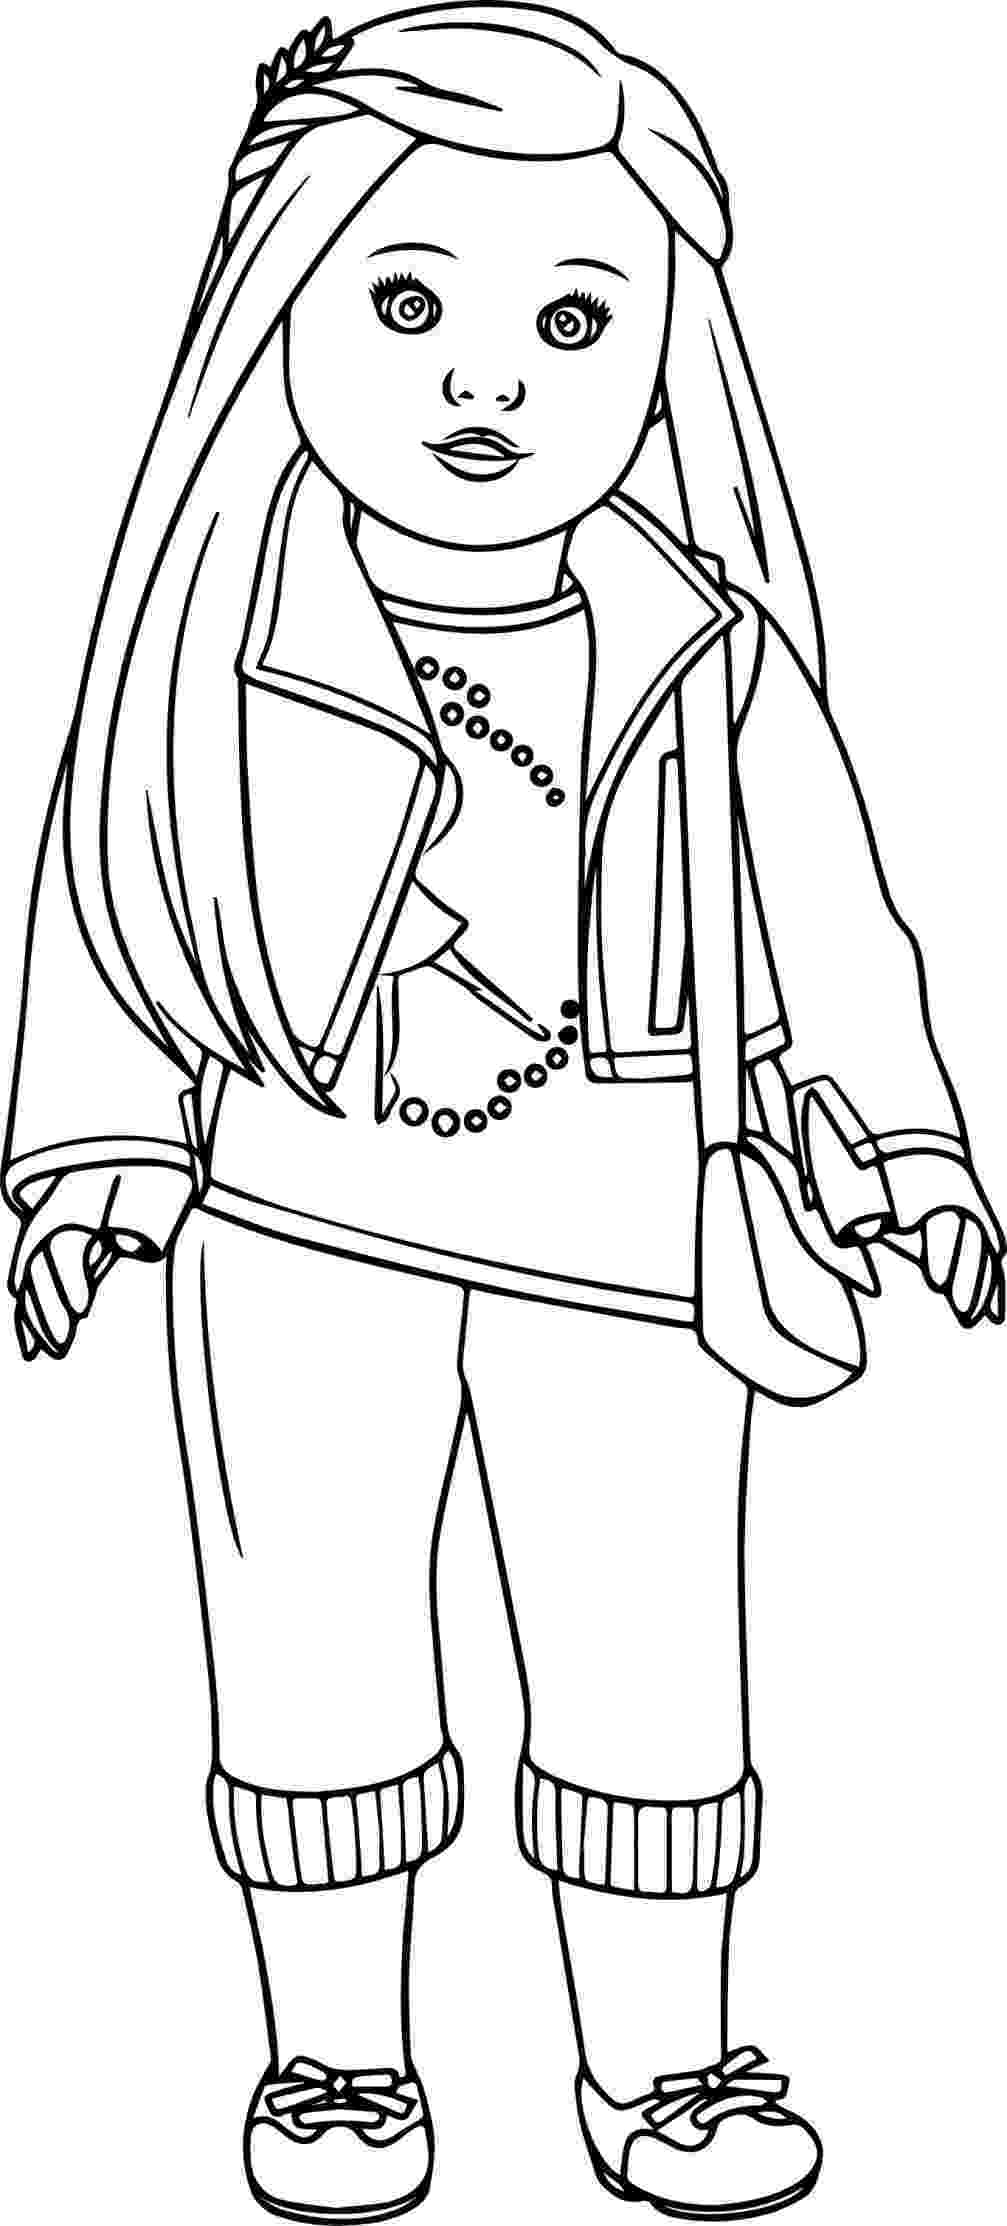 girl pictures to color and print manga coloring pages to download and print for free pictures to girl color print and